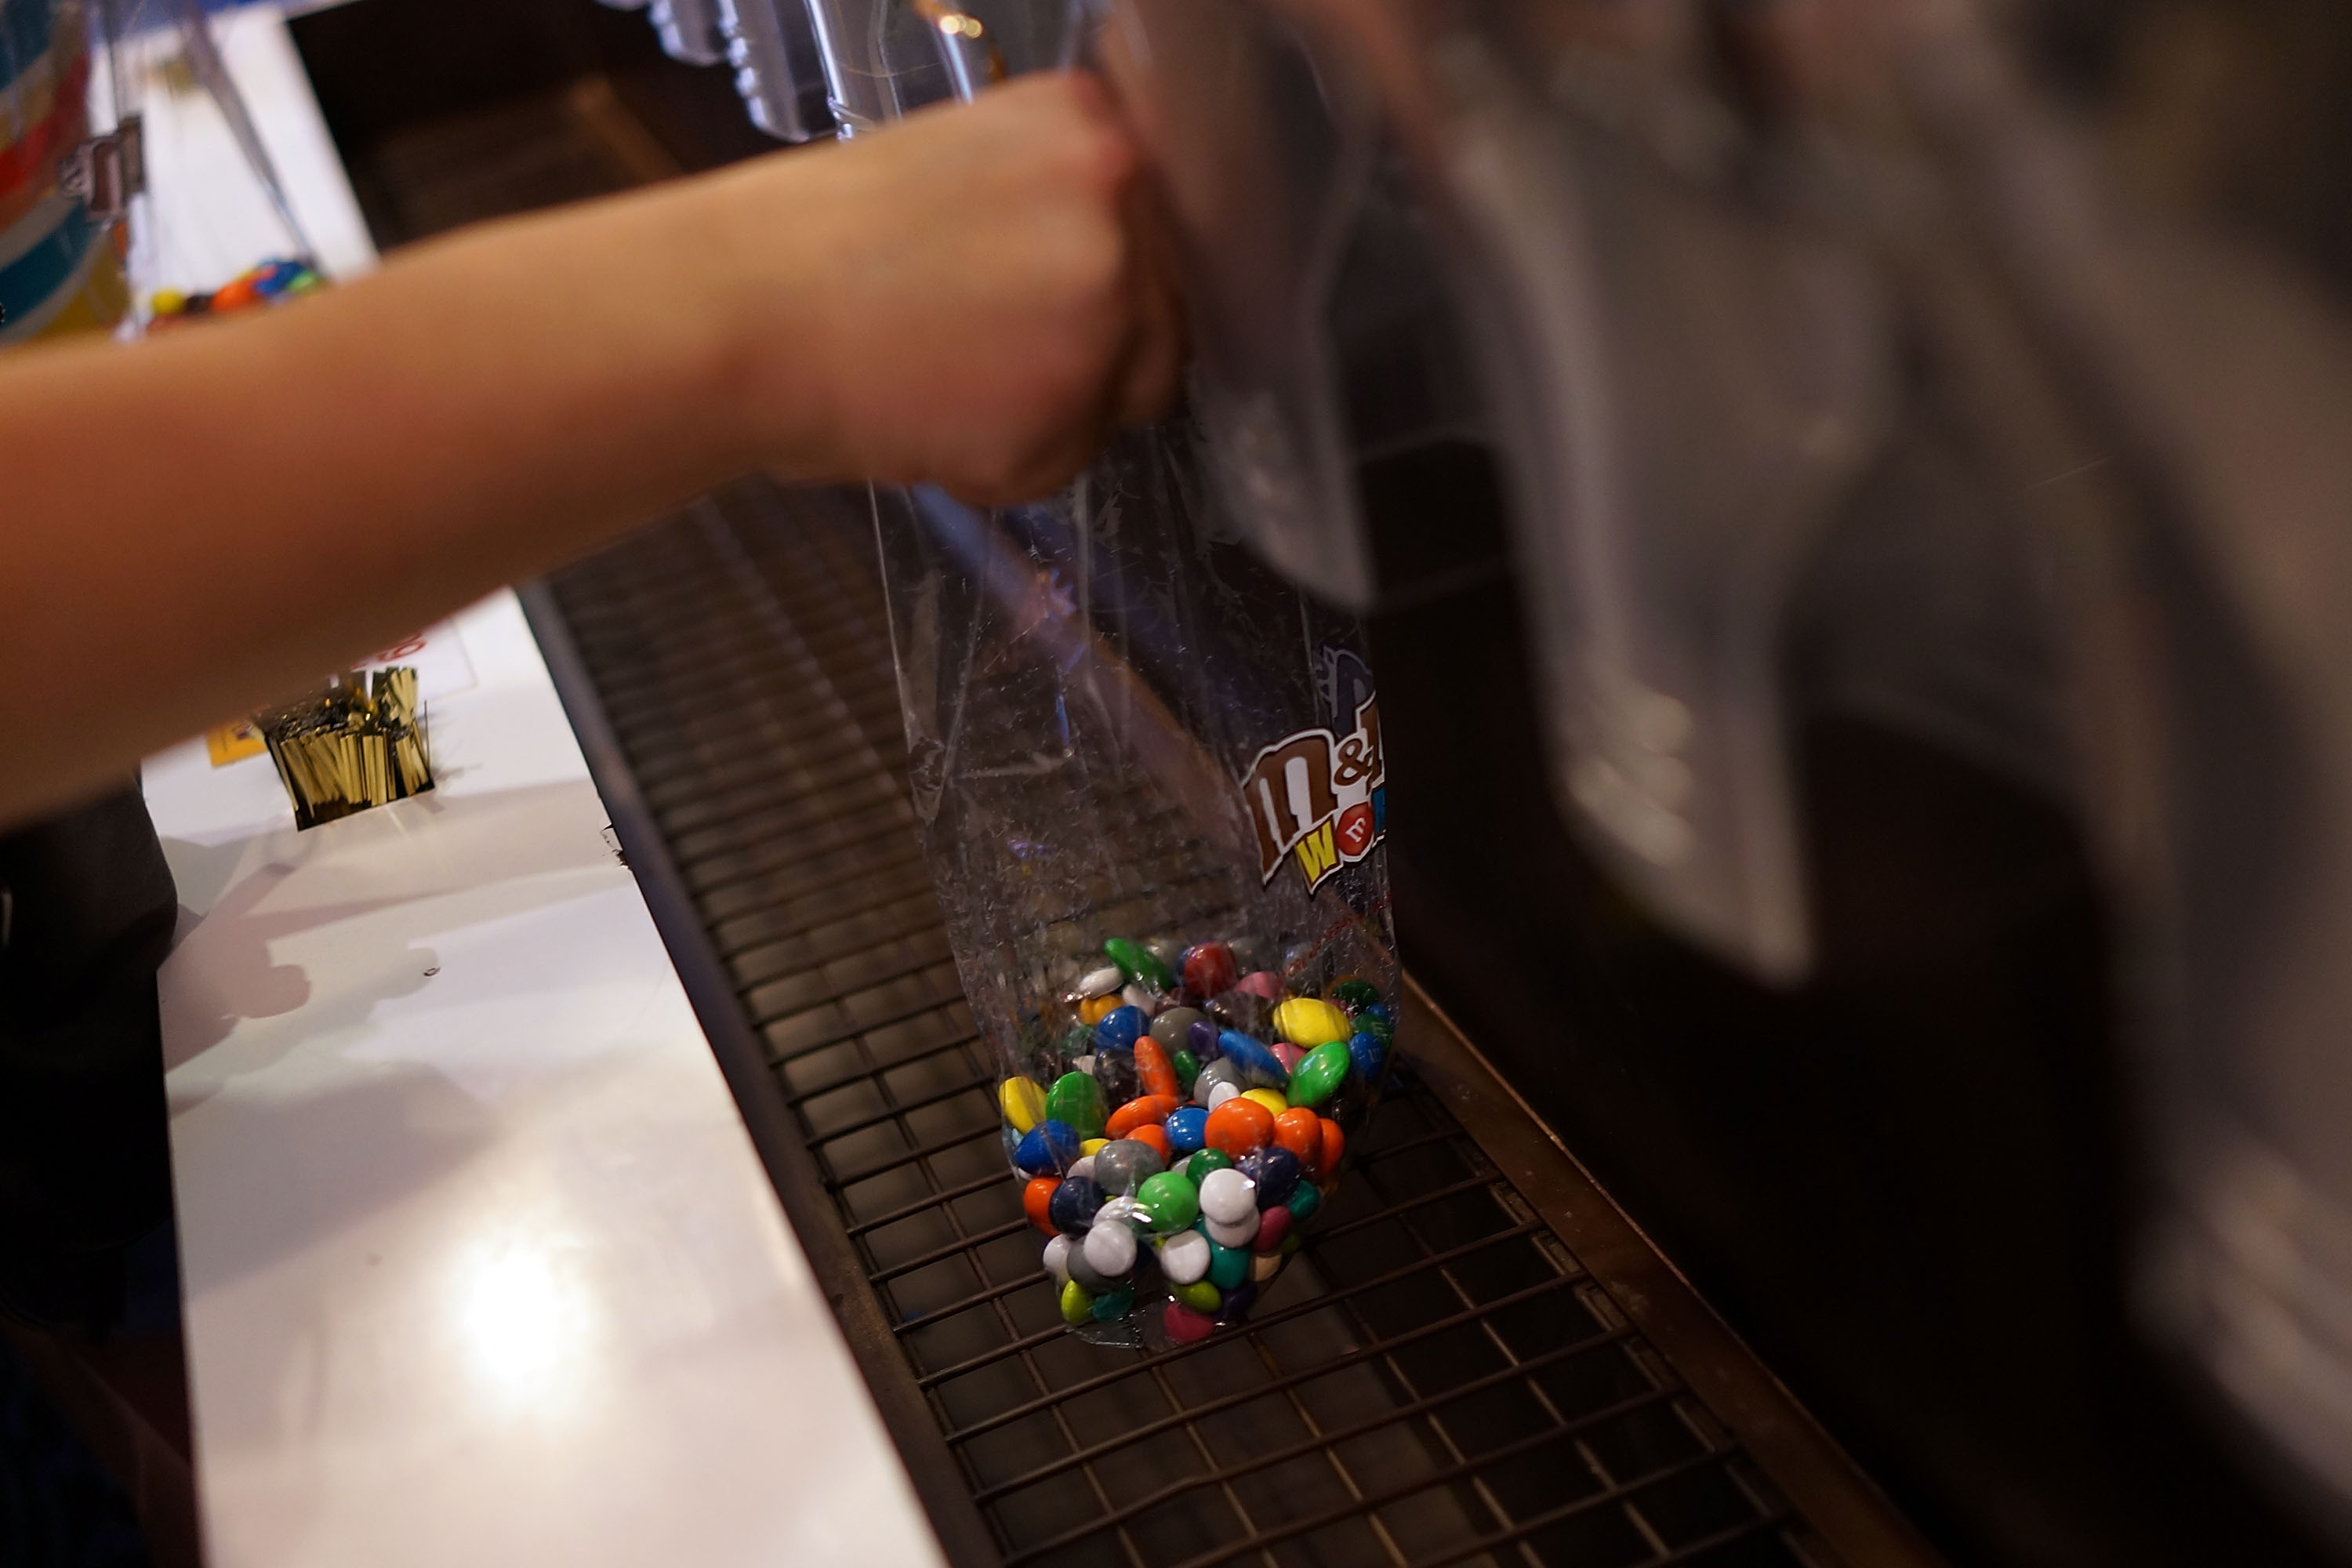 People fill up bags of M&M's at the M&M store in Times Square in New York City on July 24, 2014.